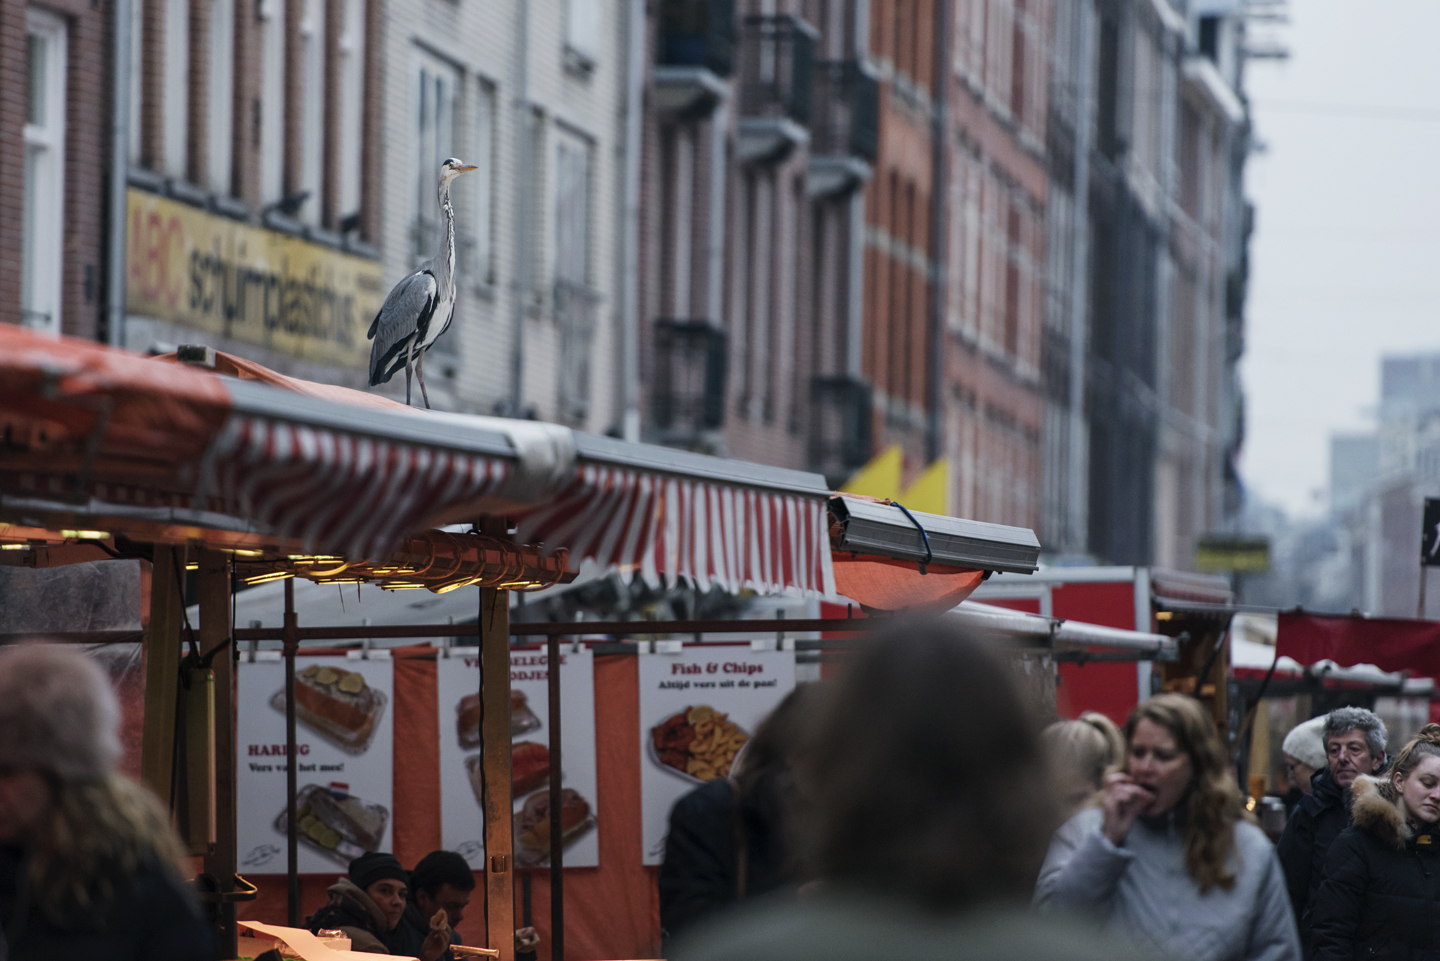 With many canals and rivers, Amsterdam is the perfect city for grey herons